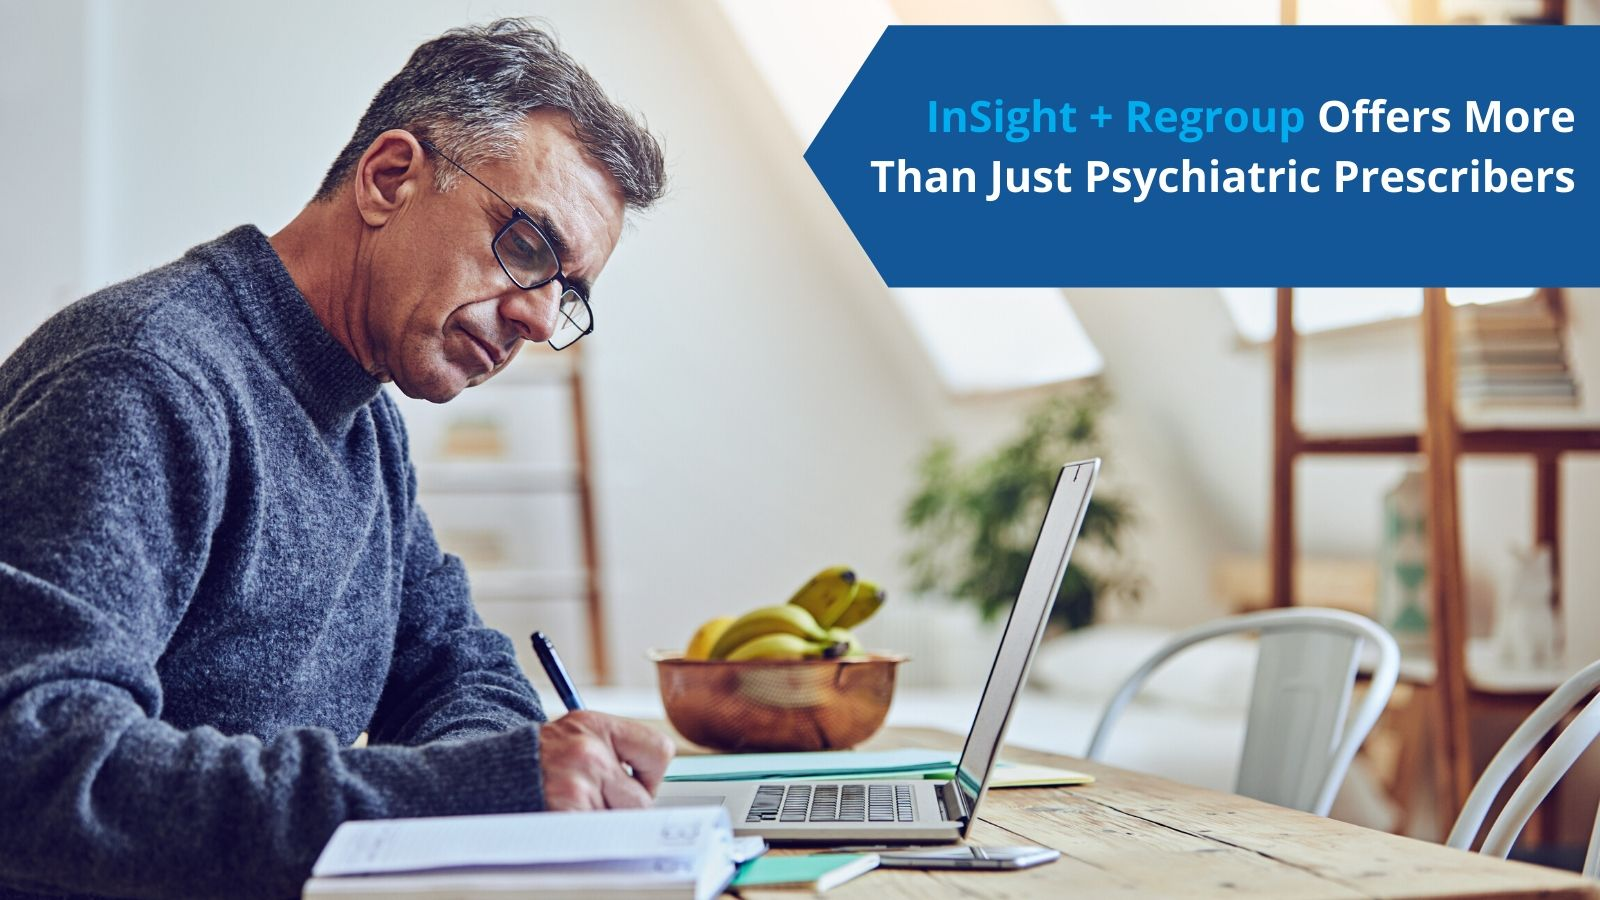 InSight + Regroup Offer More Than Just PsychiatricProviders) (1)